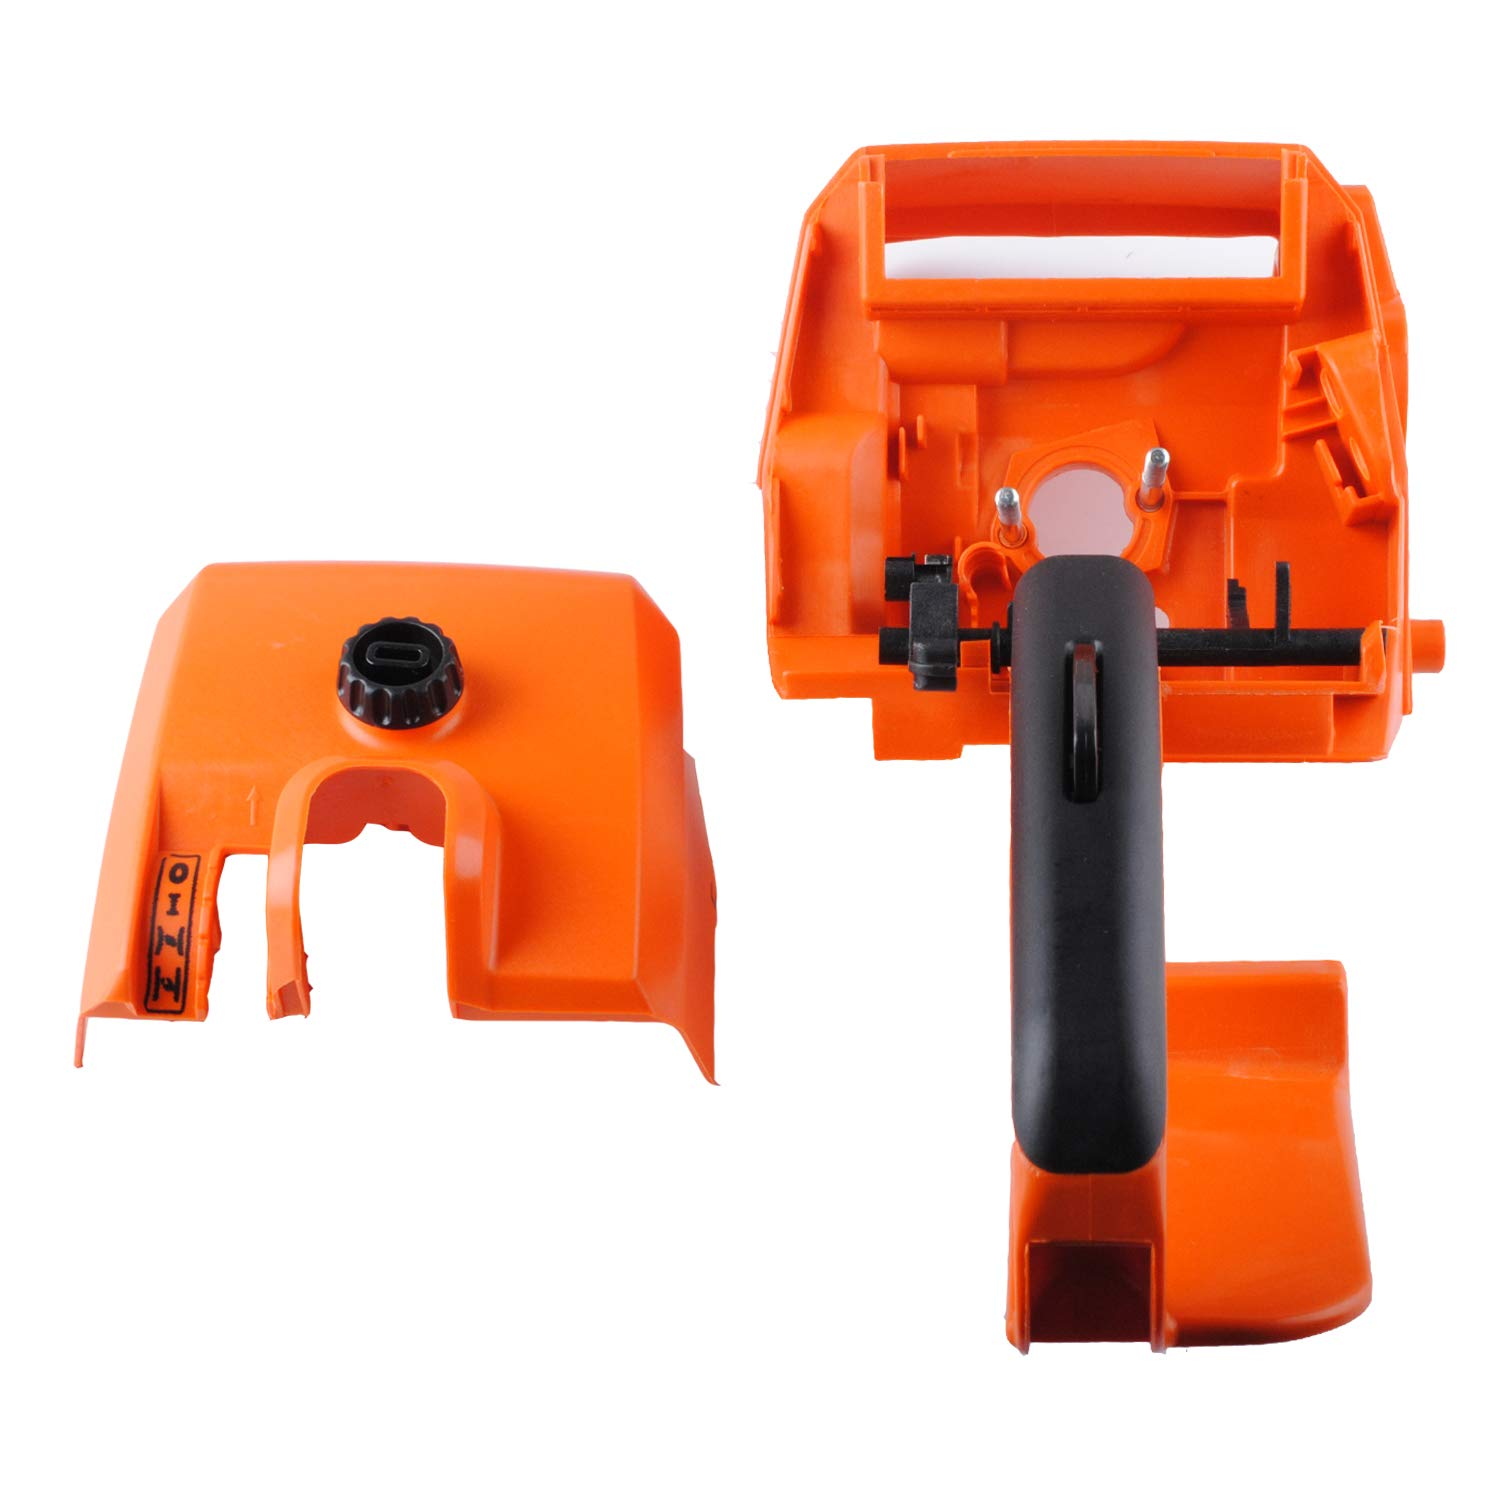 Wadoy Handle Cover for STIHL Chainsaw Parts 029 034 036 039 MS290 MS310 MS390 New #1127 790 1001 - Rear Handle with Air Filter Cover Assembly by Wadoy